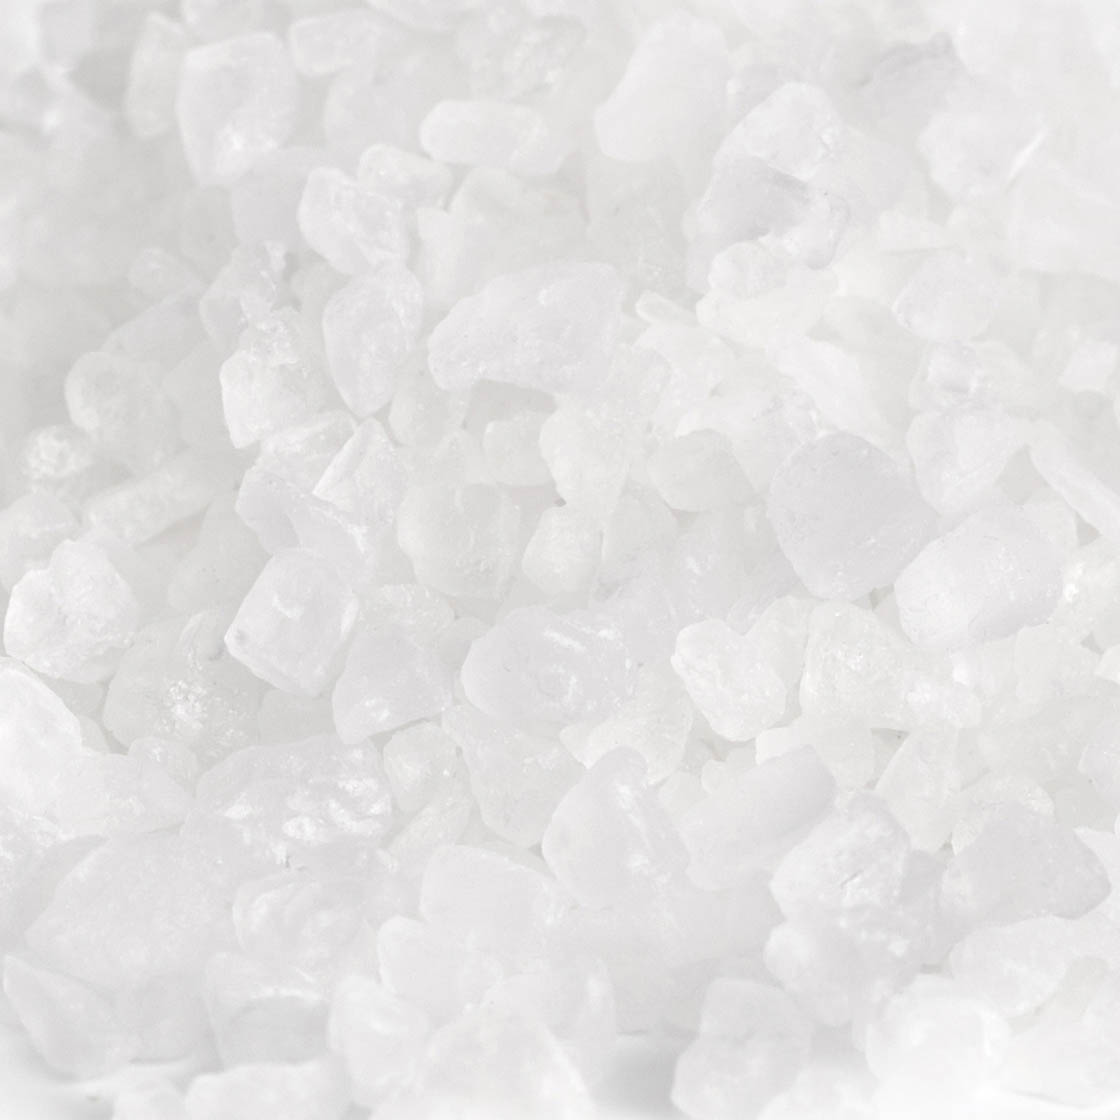 Seasalt Coarse (Organic approved)